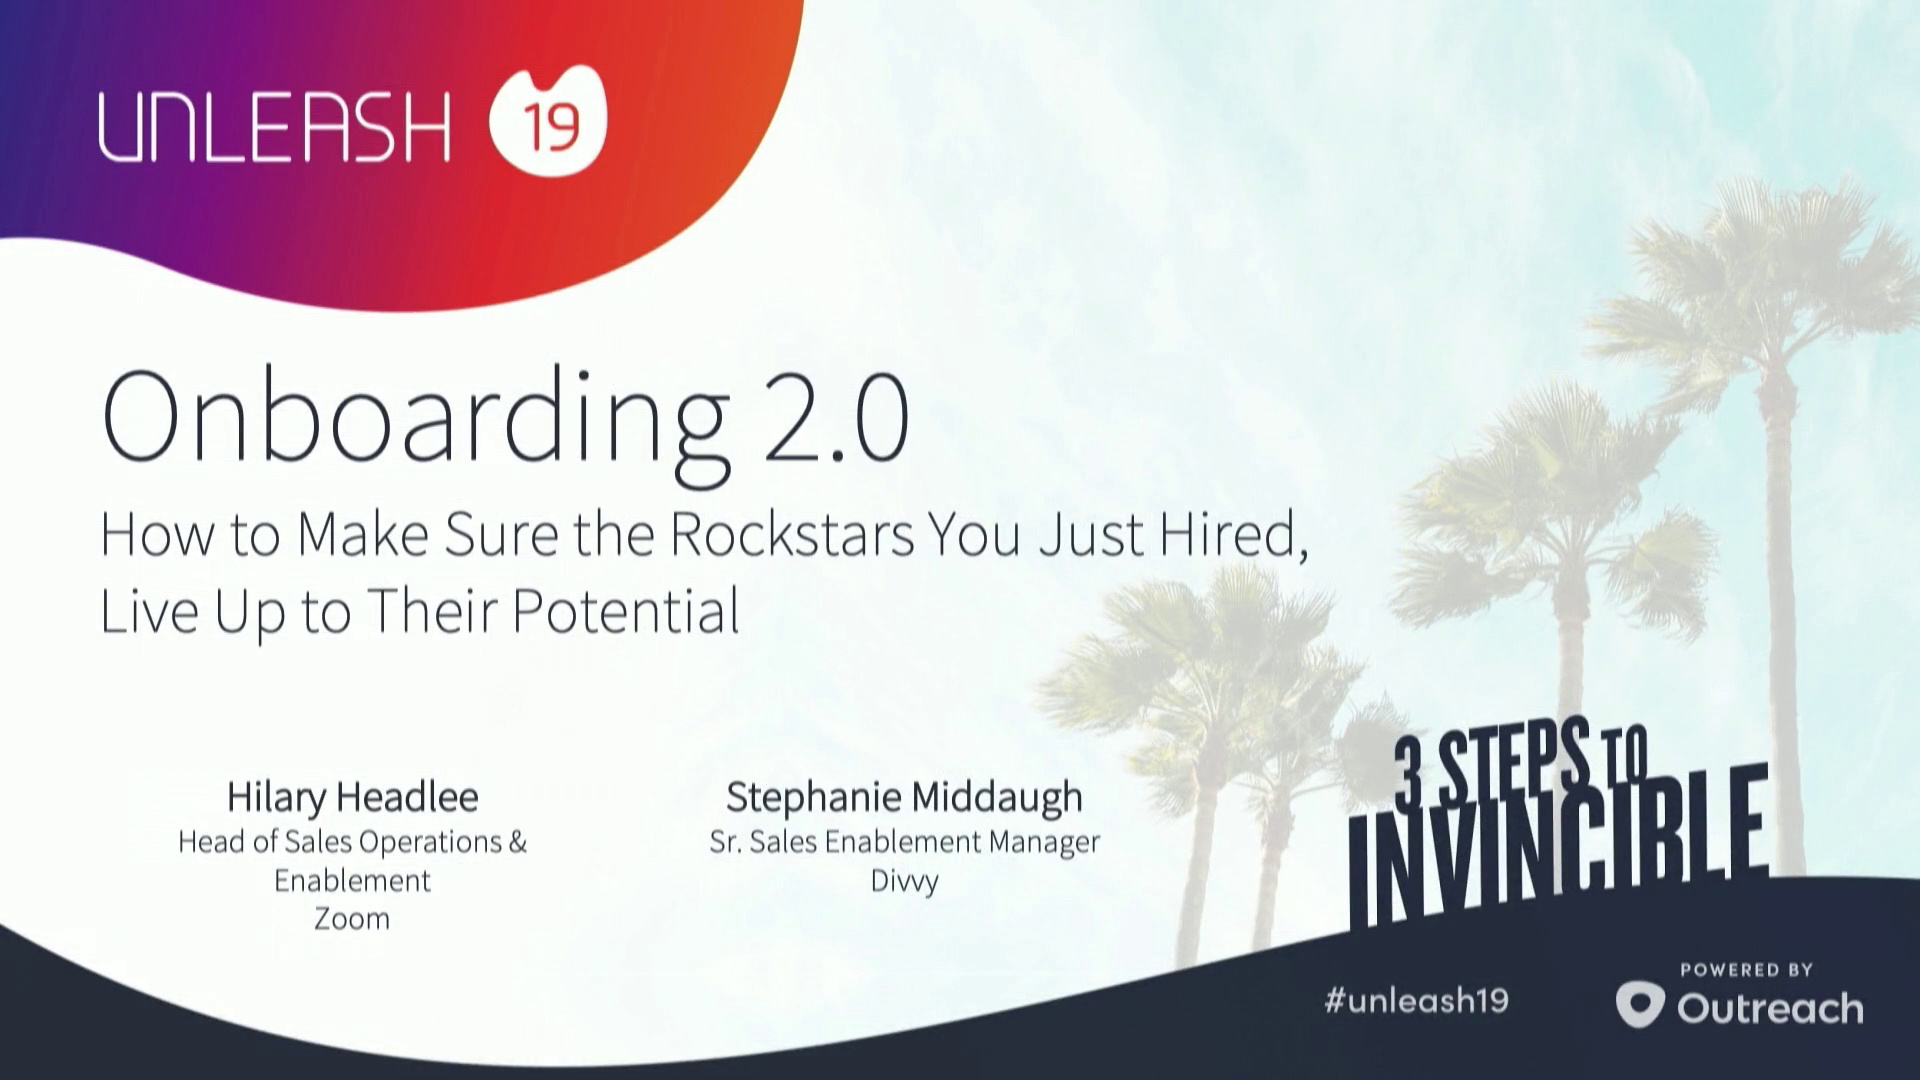 Onboarding 2.0 - Hilary Headlee, Stephanie Middaugh